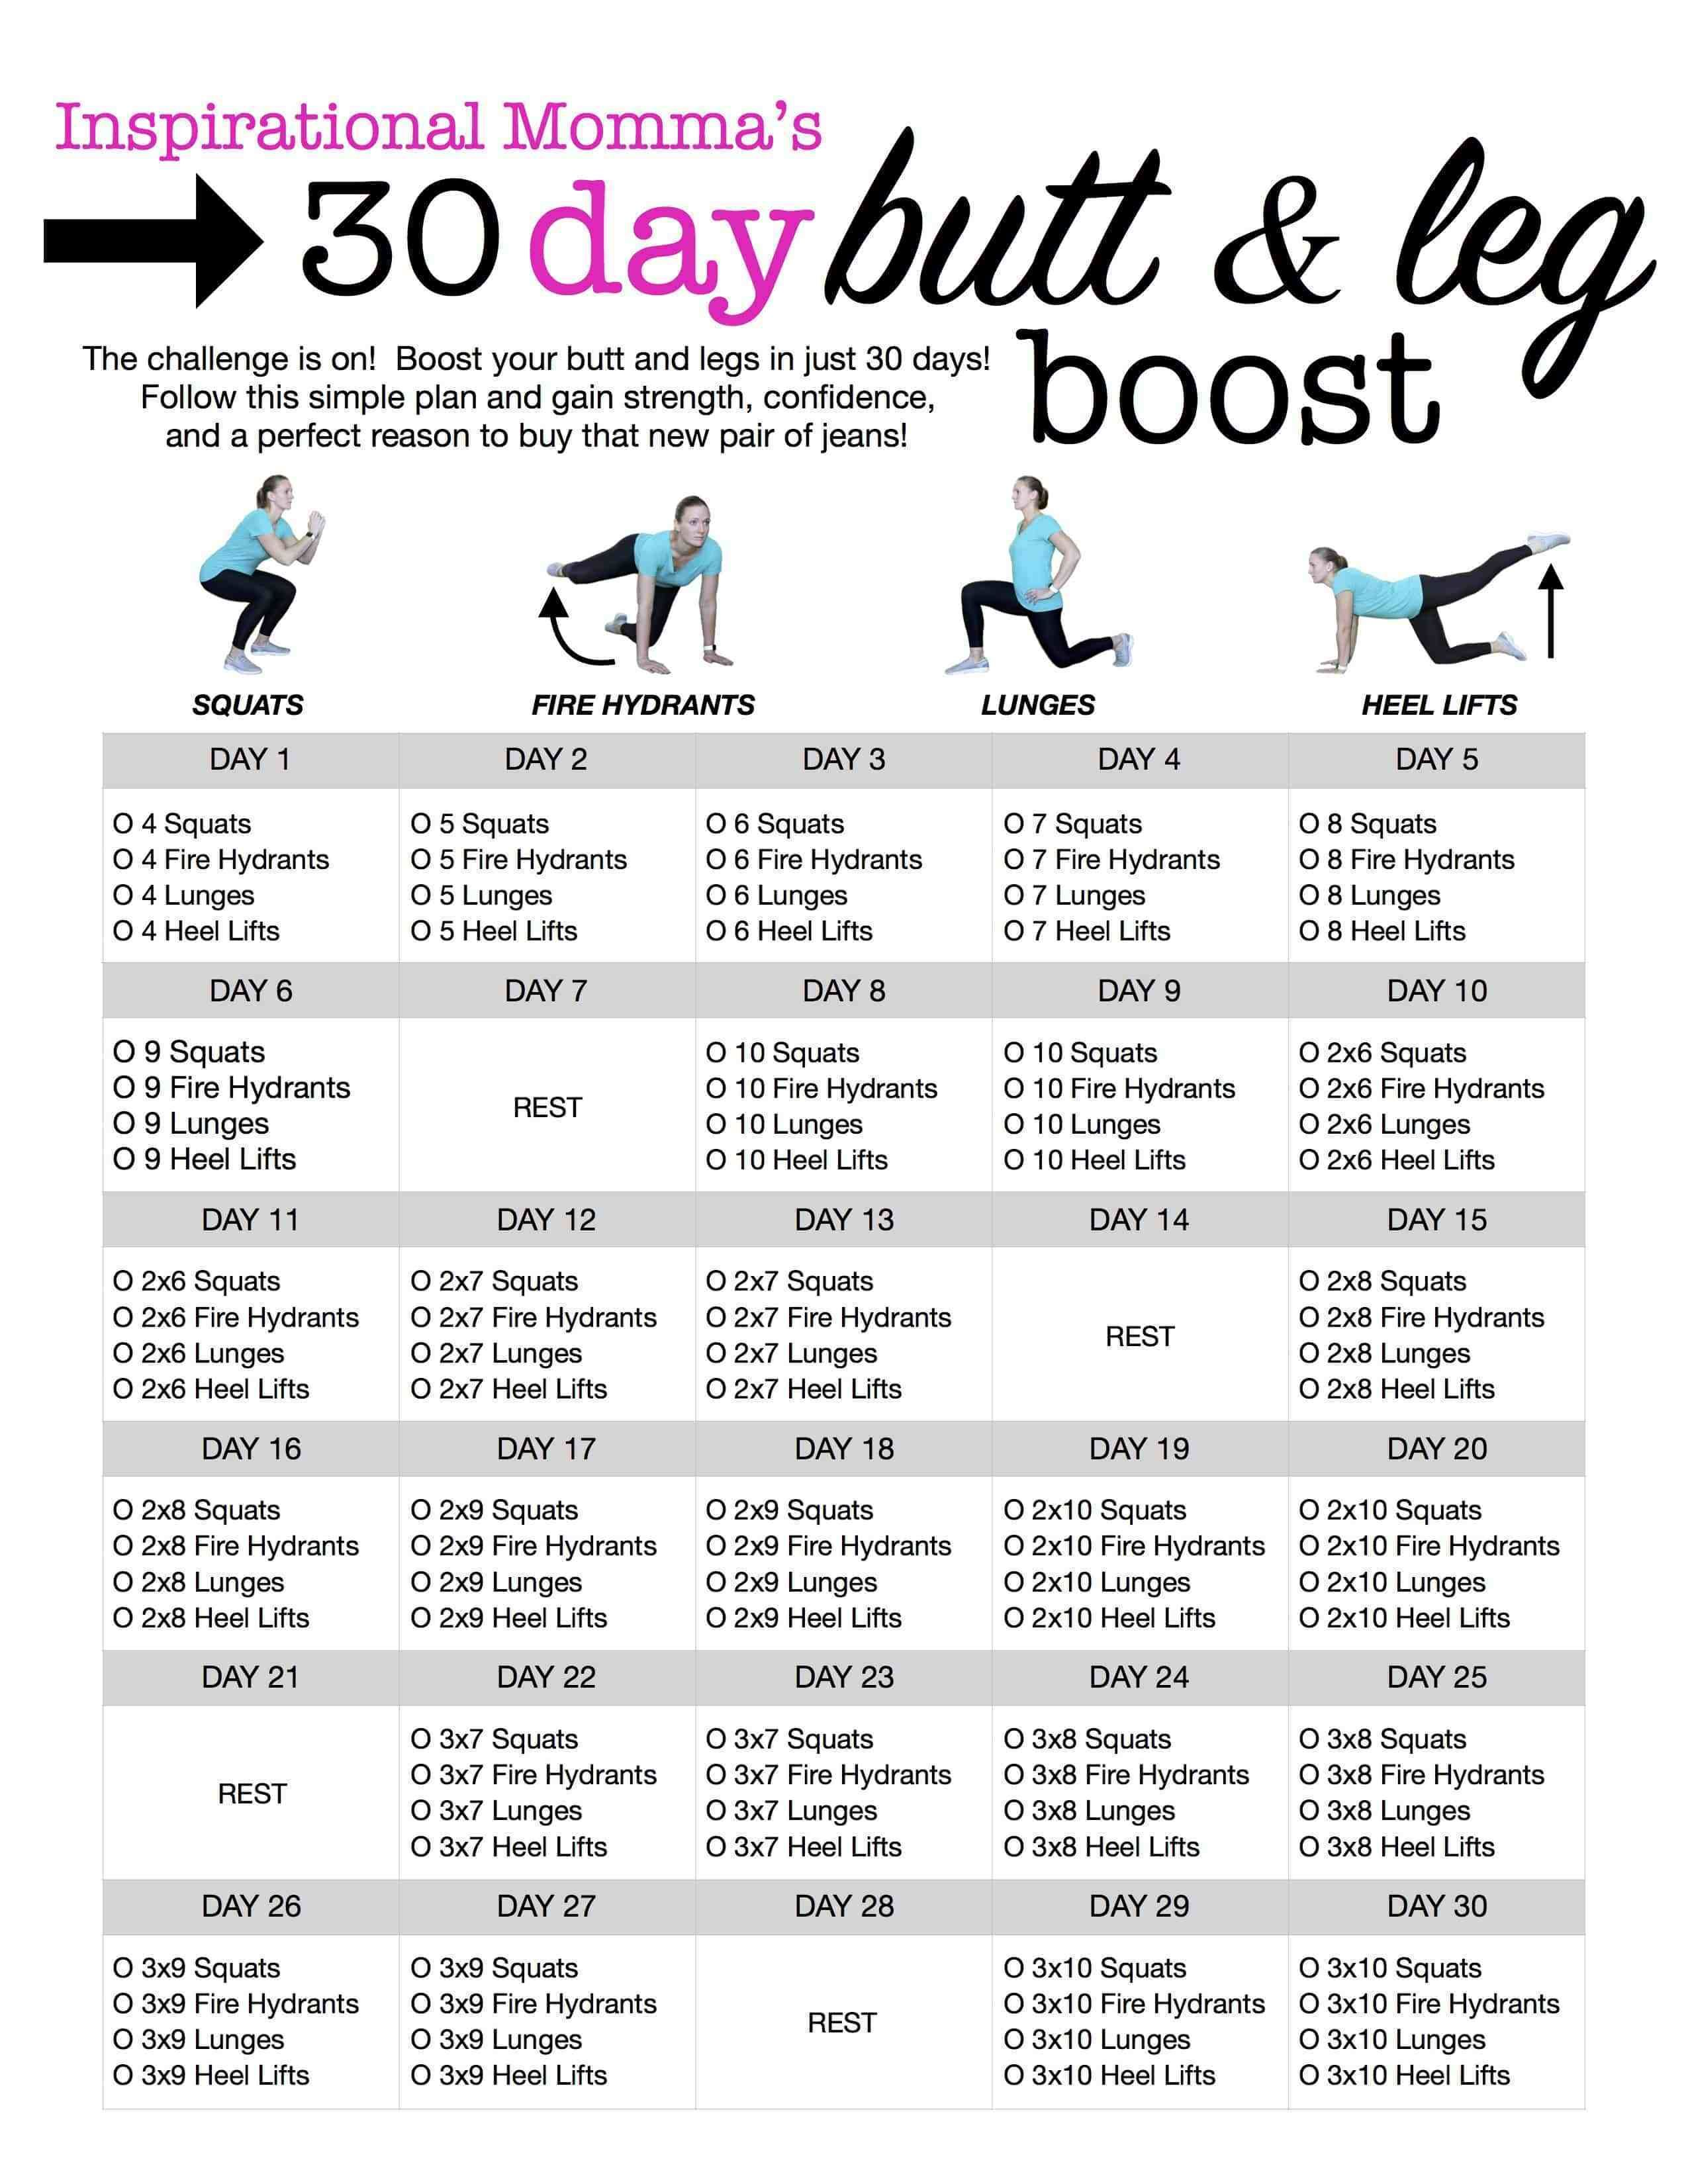 30-Day Butt & Leg Boost Challenge